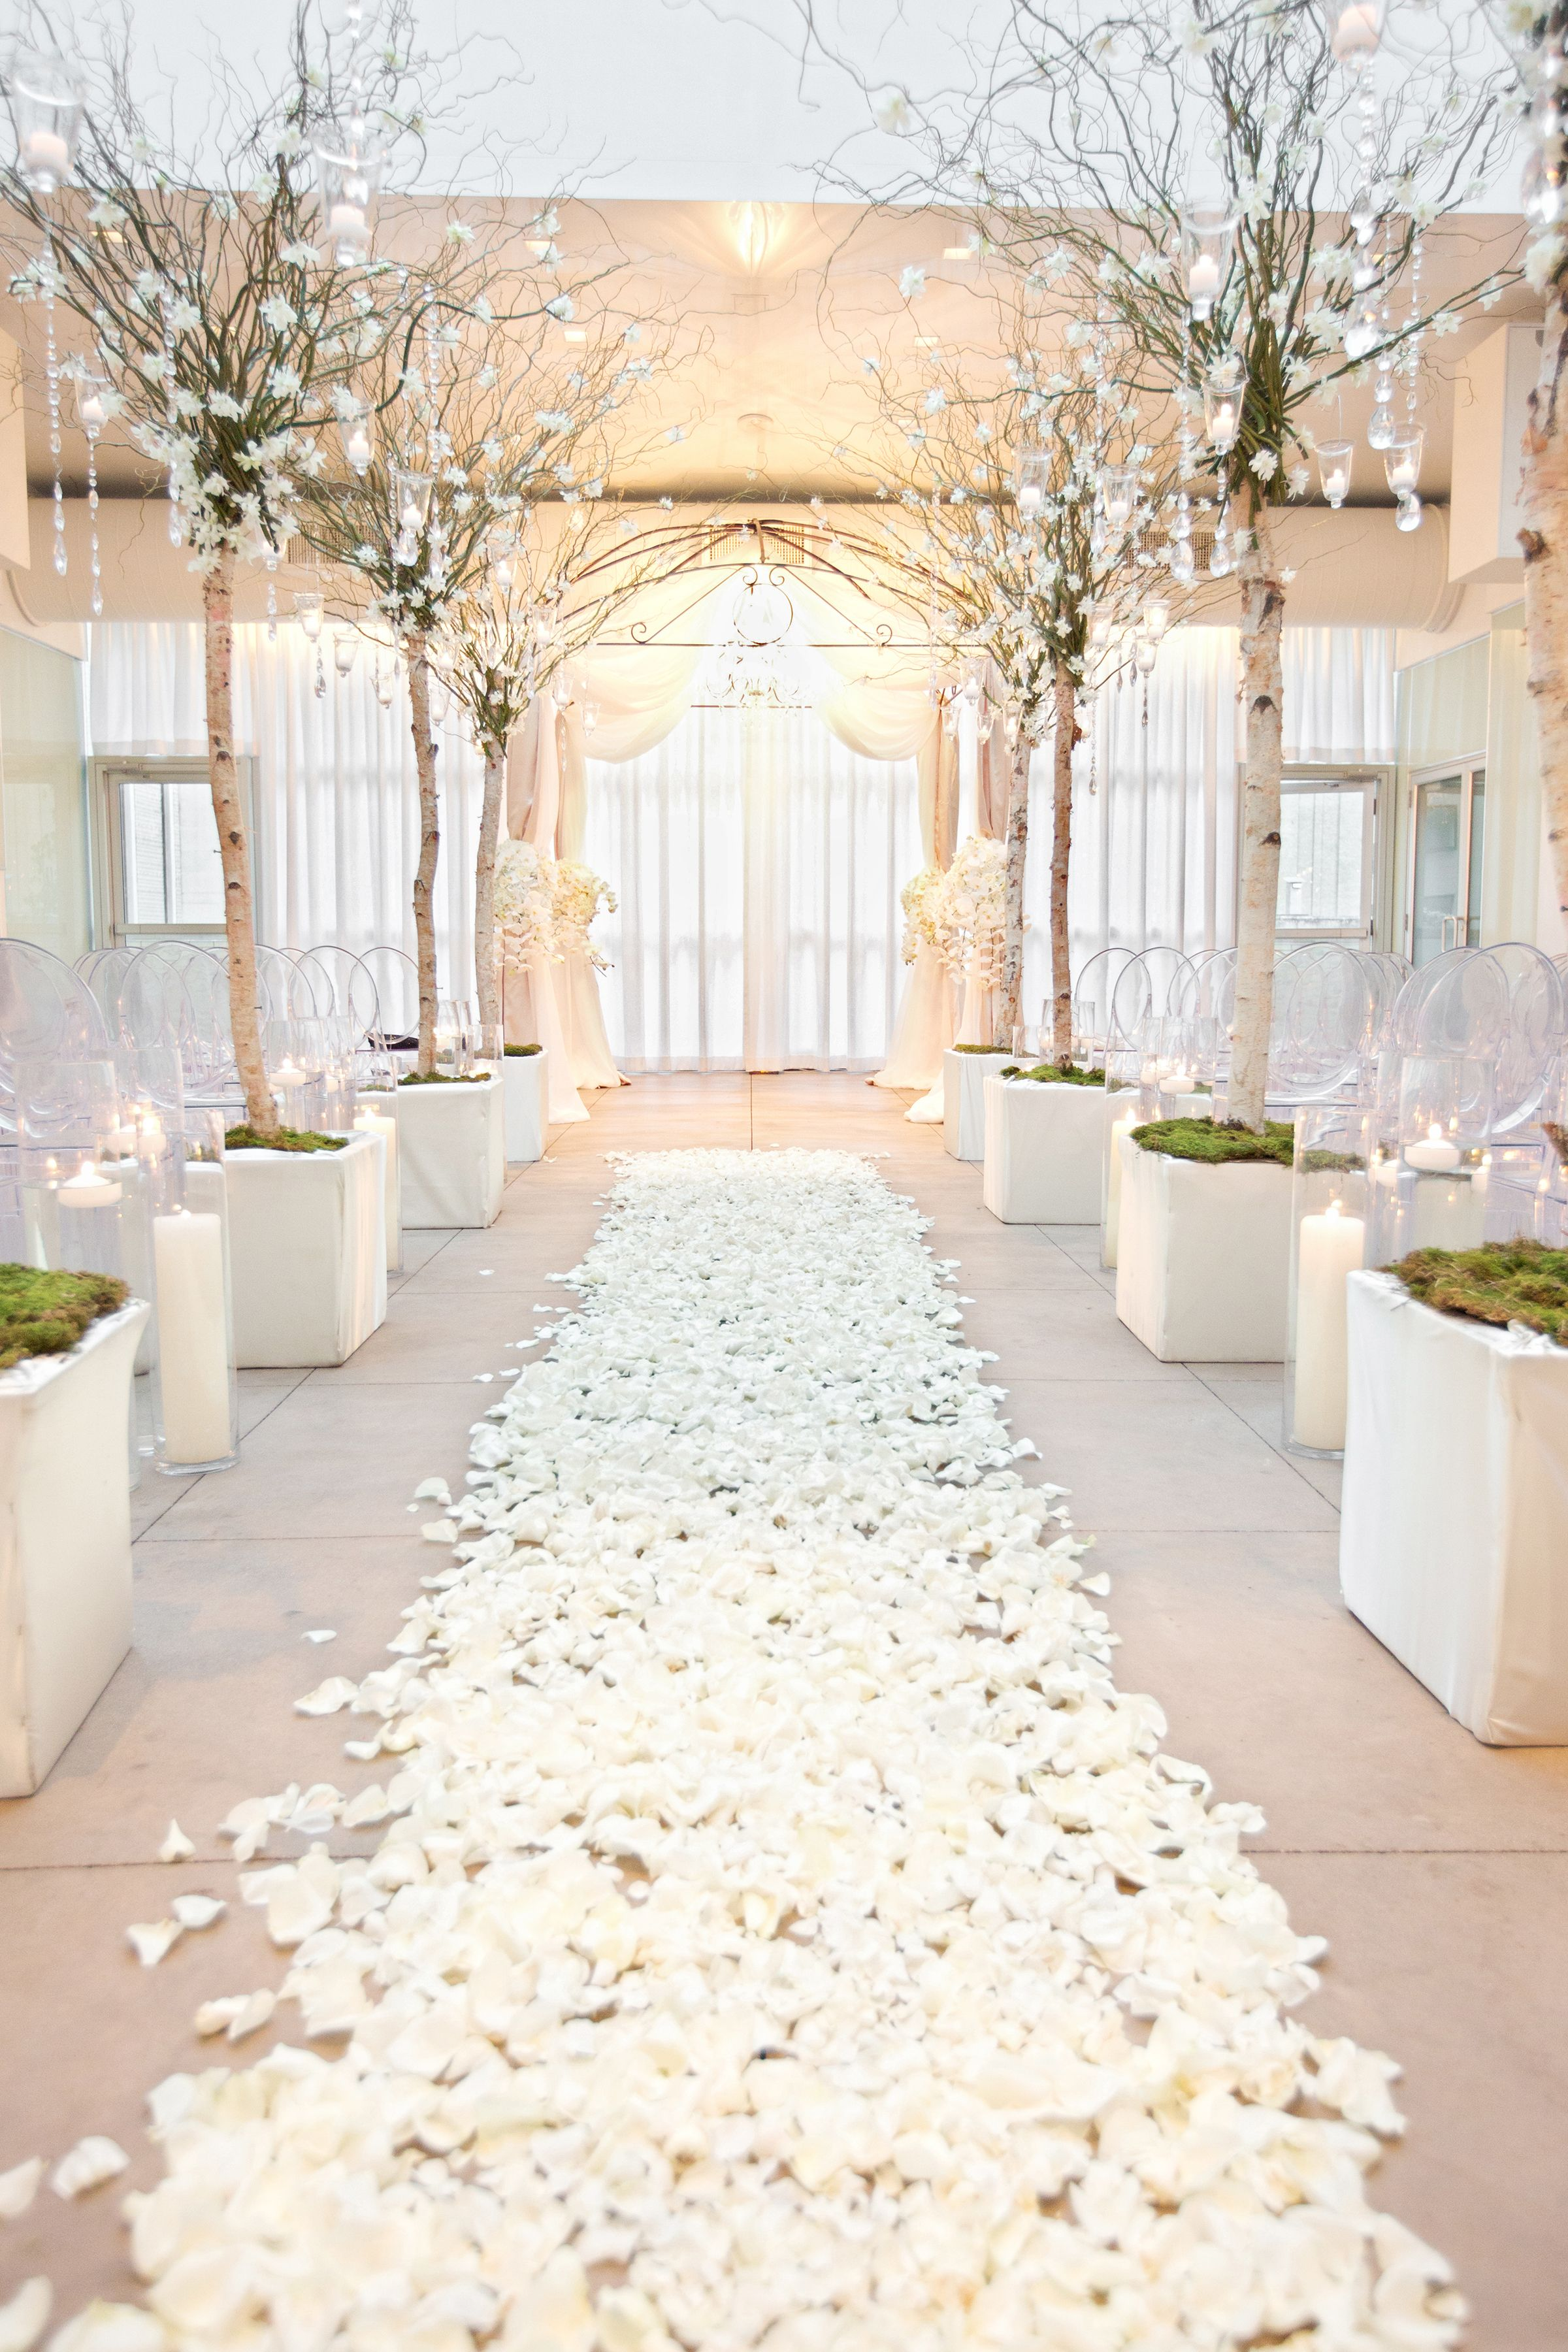 An aisle of white rose petals and branches dripping with